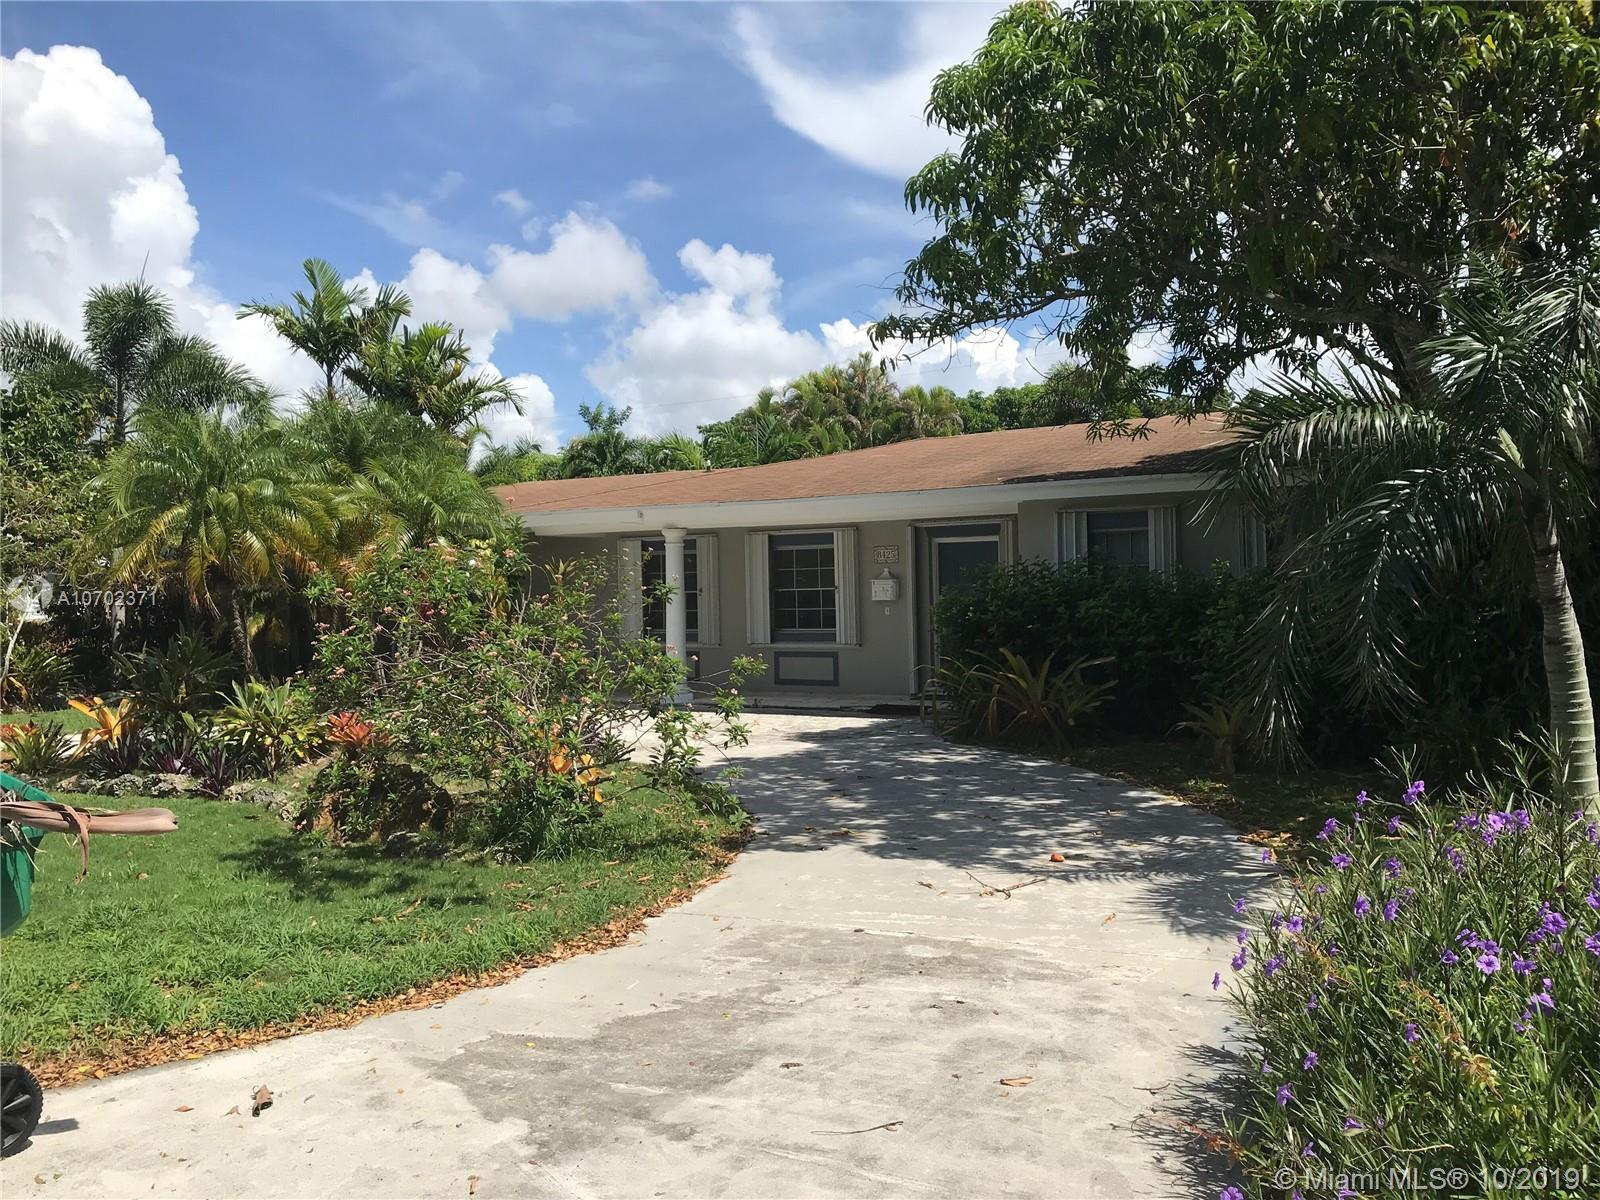 8425 SW 156th St, Kendall in Miami-dade County County, FL 33157 Home for Sale